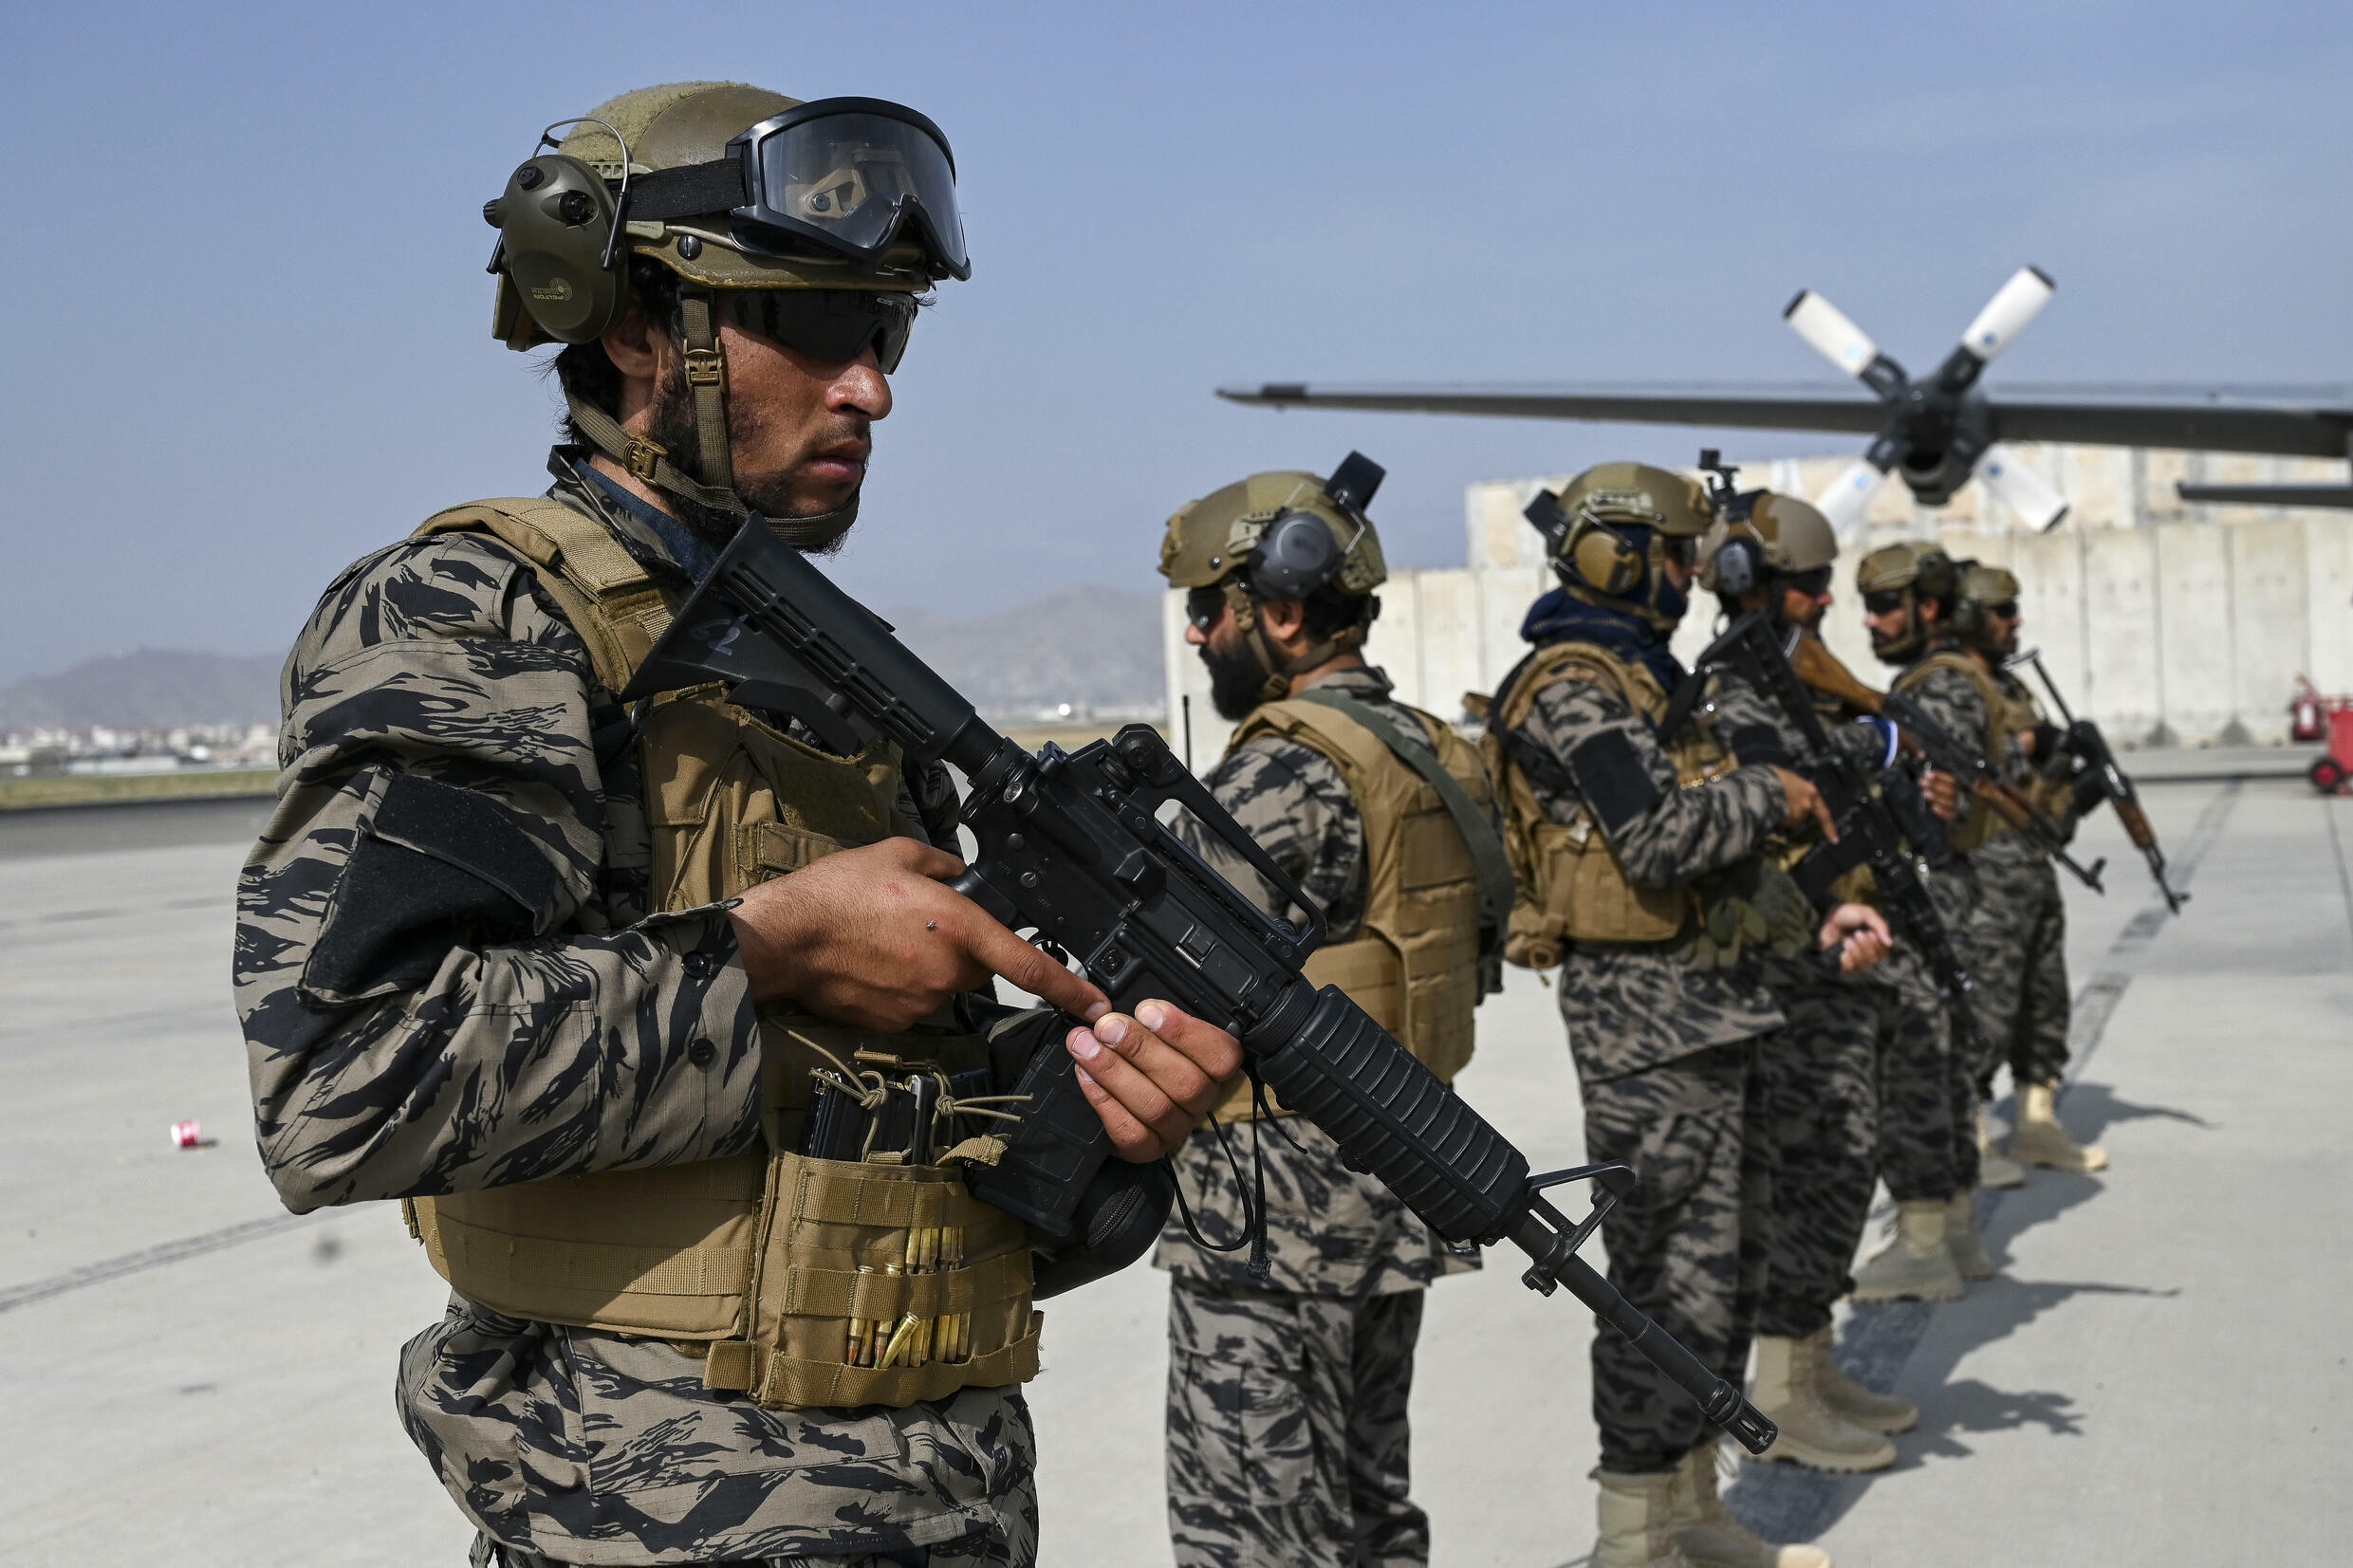 Taliban troops at Kabul's airport: Will China or Russia see the Taliban's seizure of power in Afghanistan as a sign of US weakness?